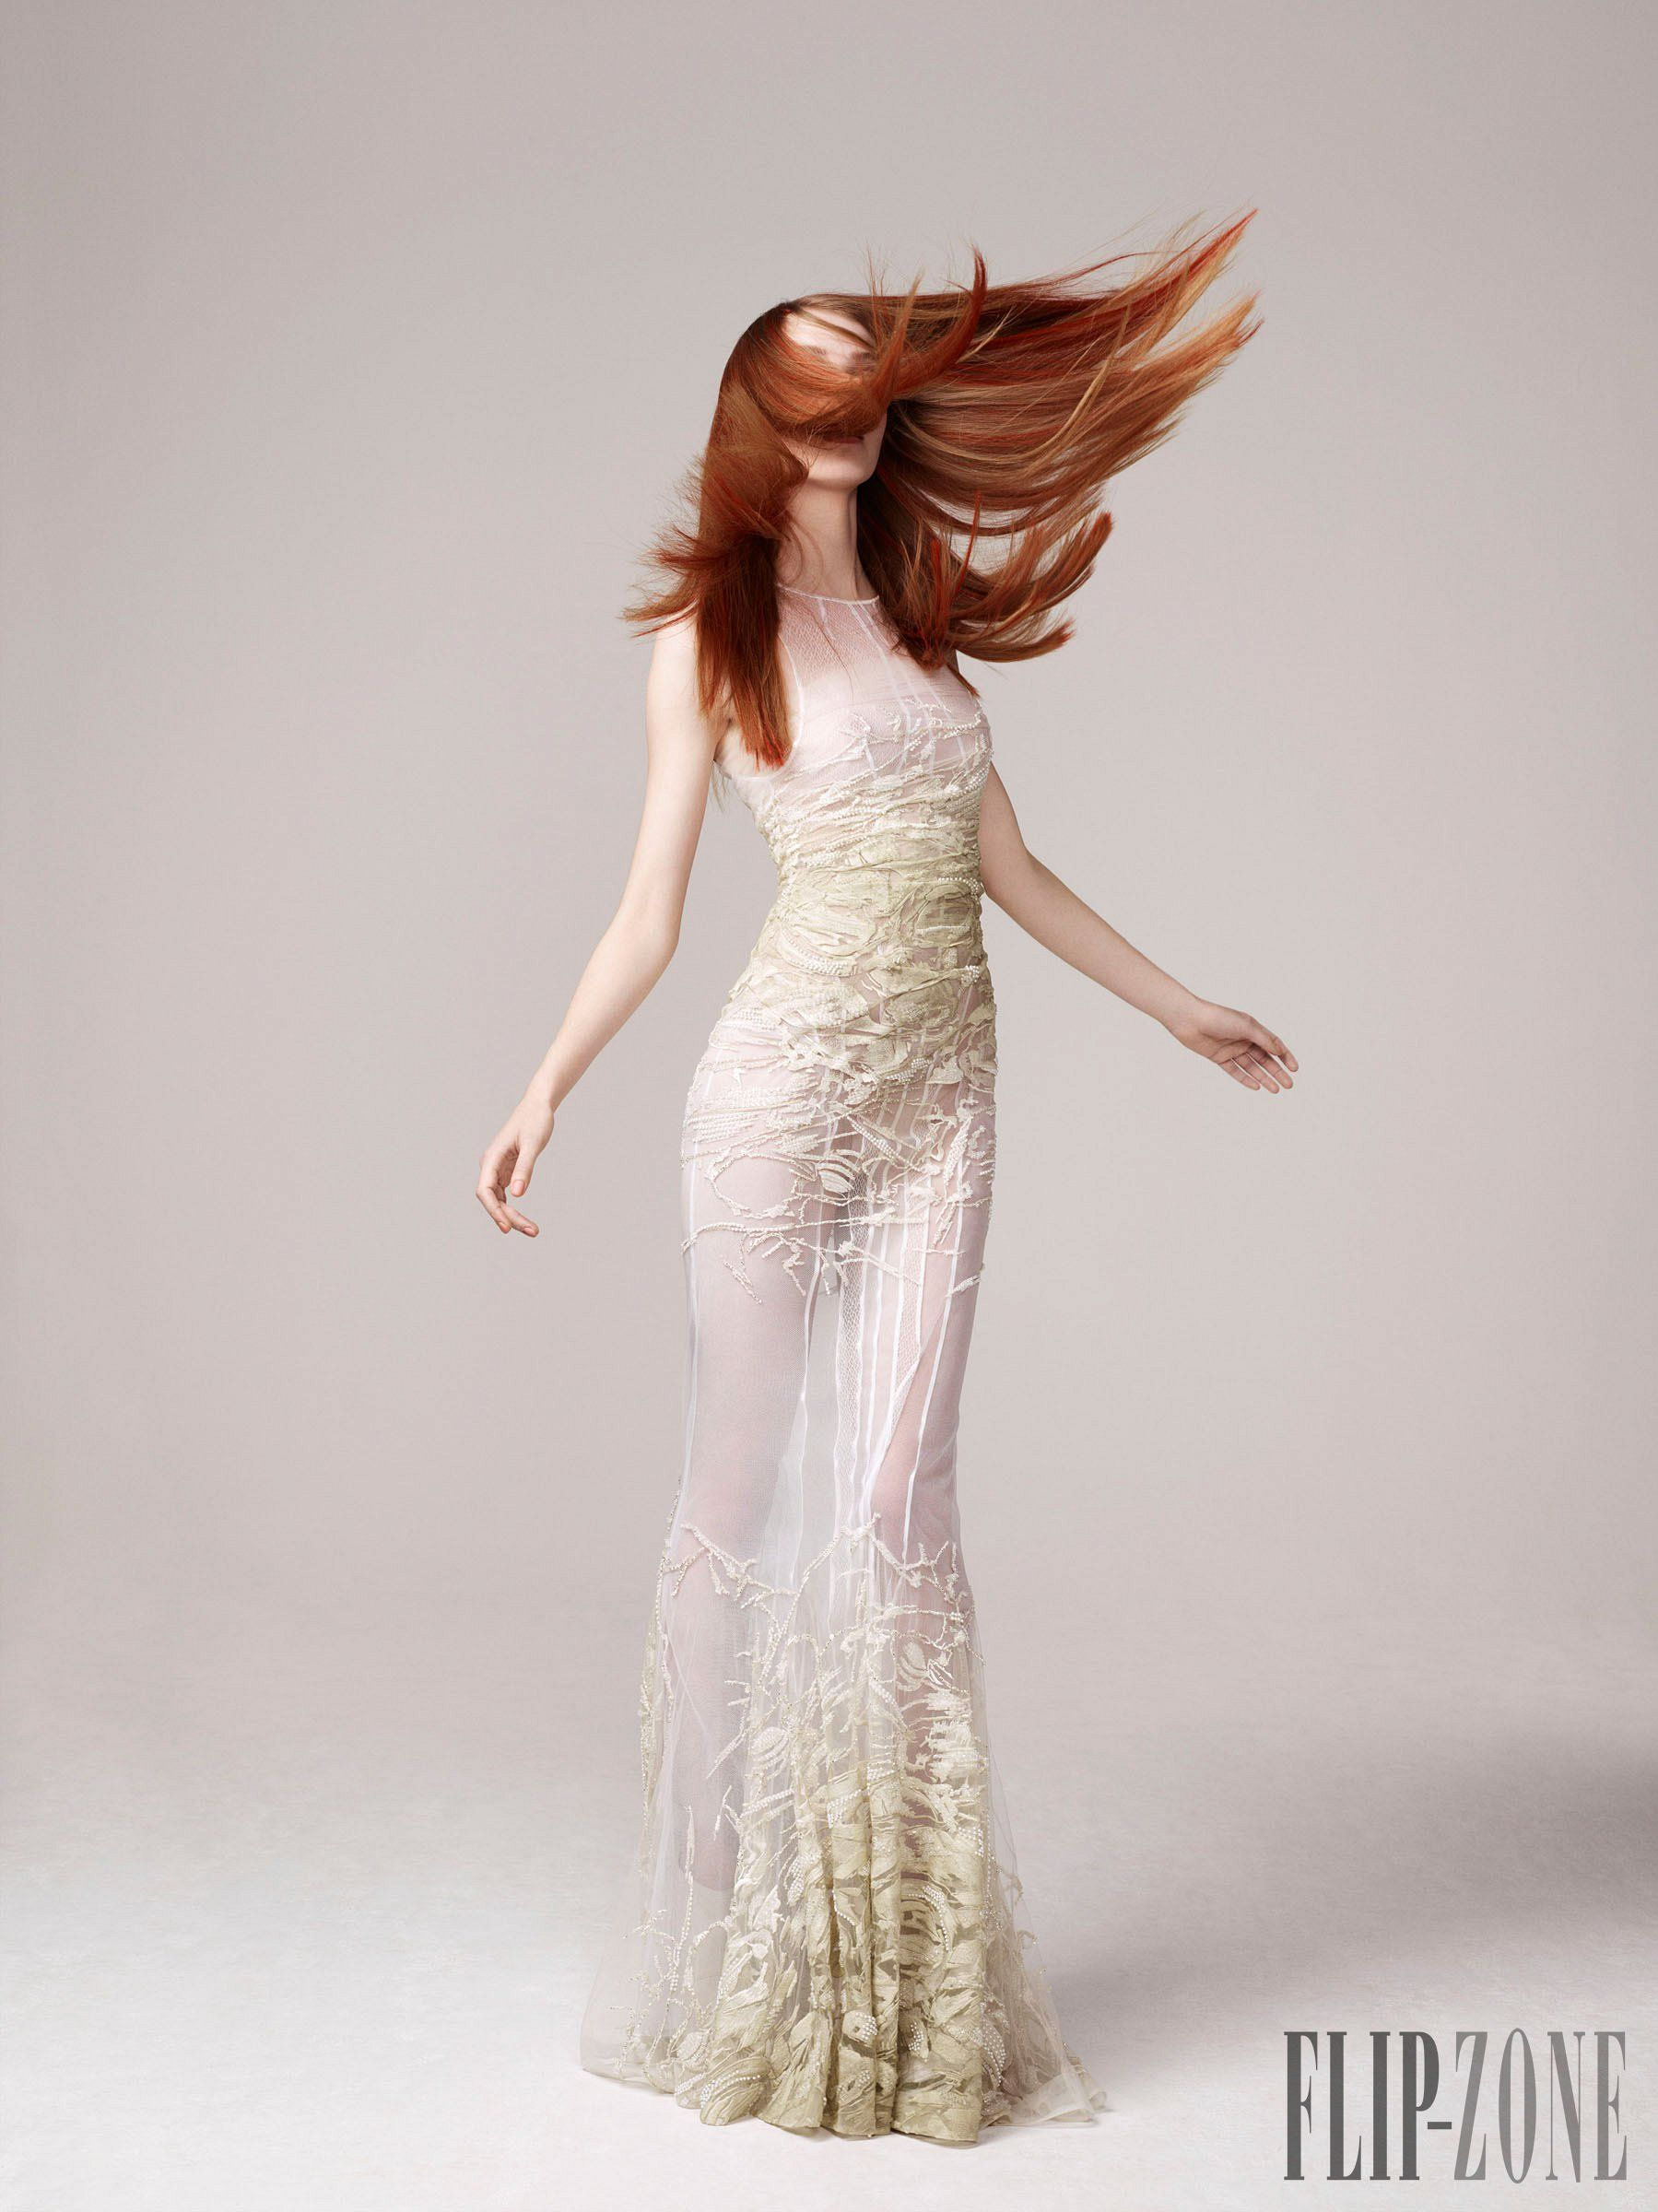 COUTURE  BASIL SODA  SPRING-SUMMER 2013